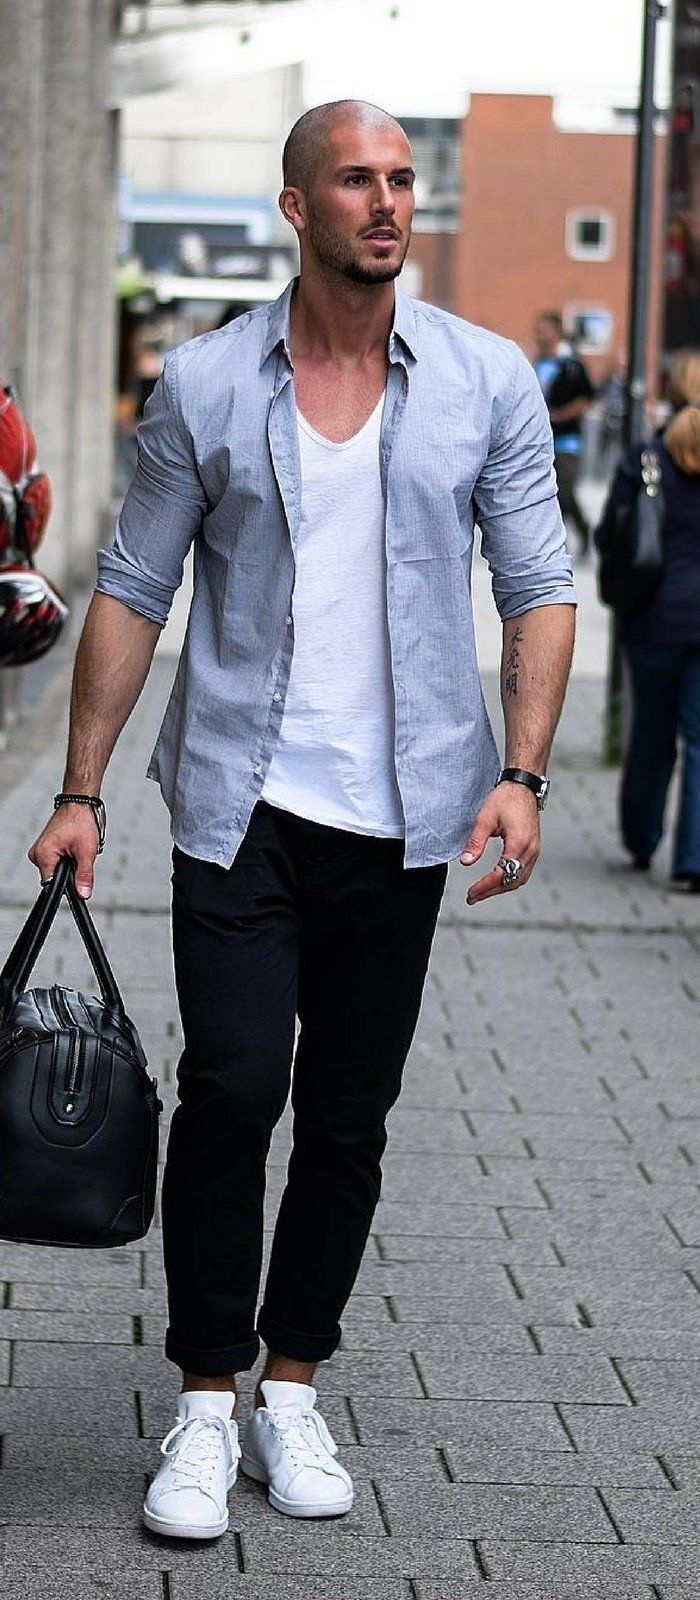 13 Coolest Casual Street Styles For Men – Dirk Dens